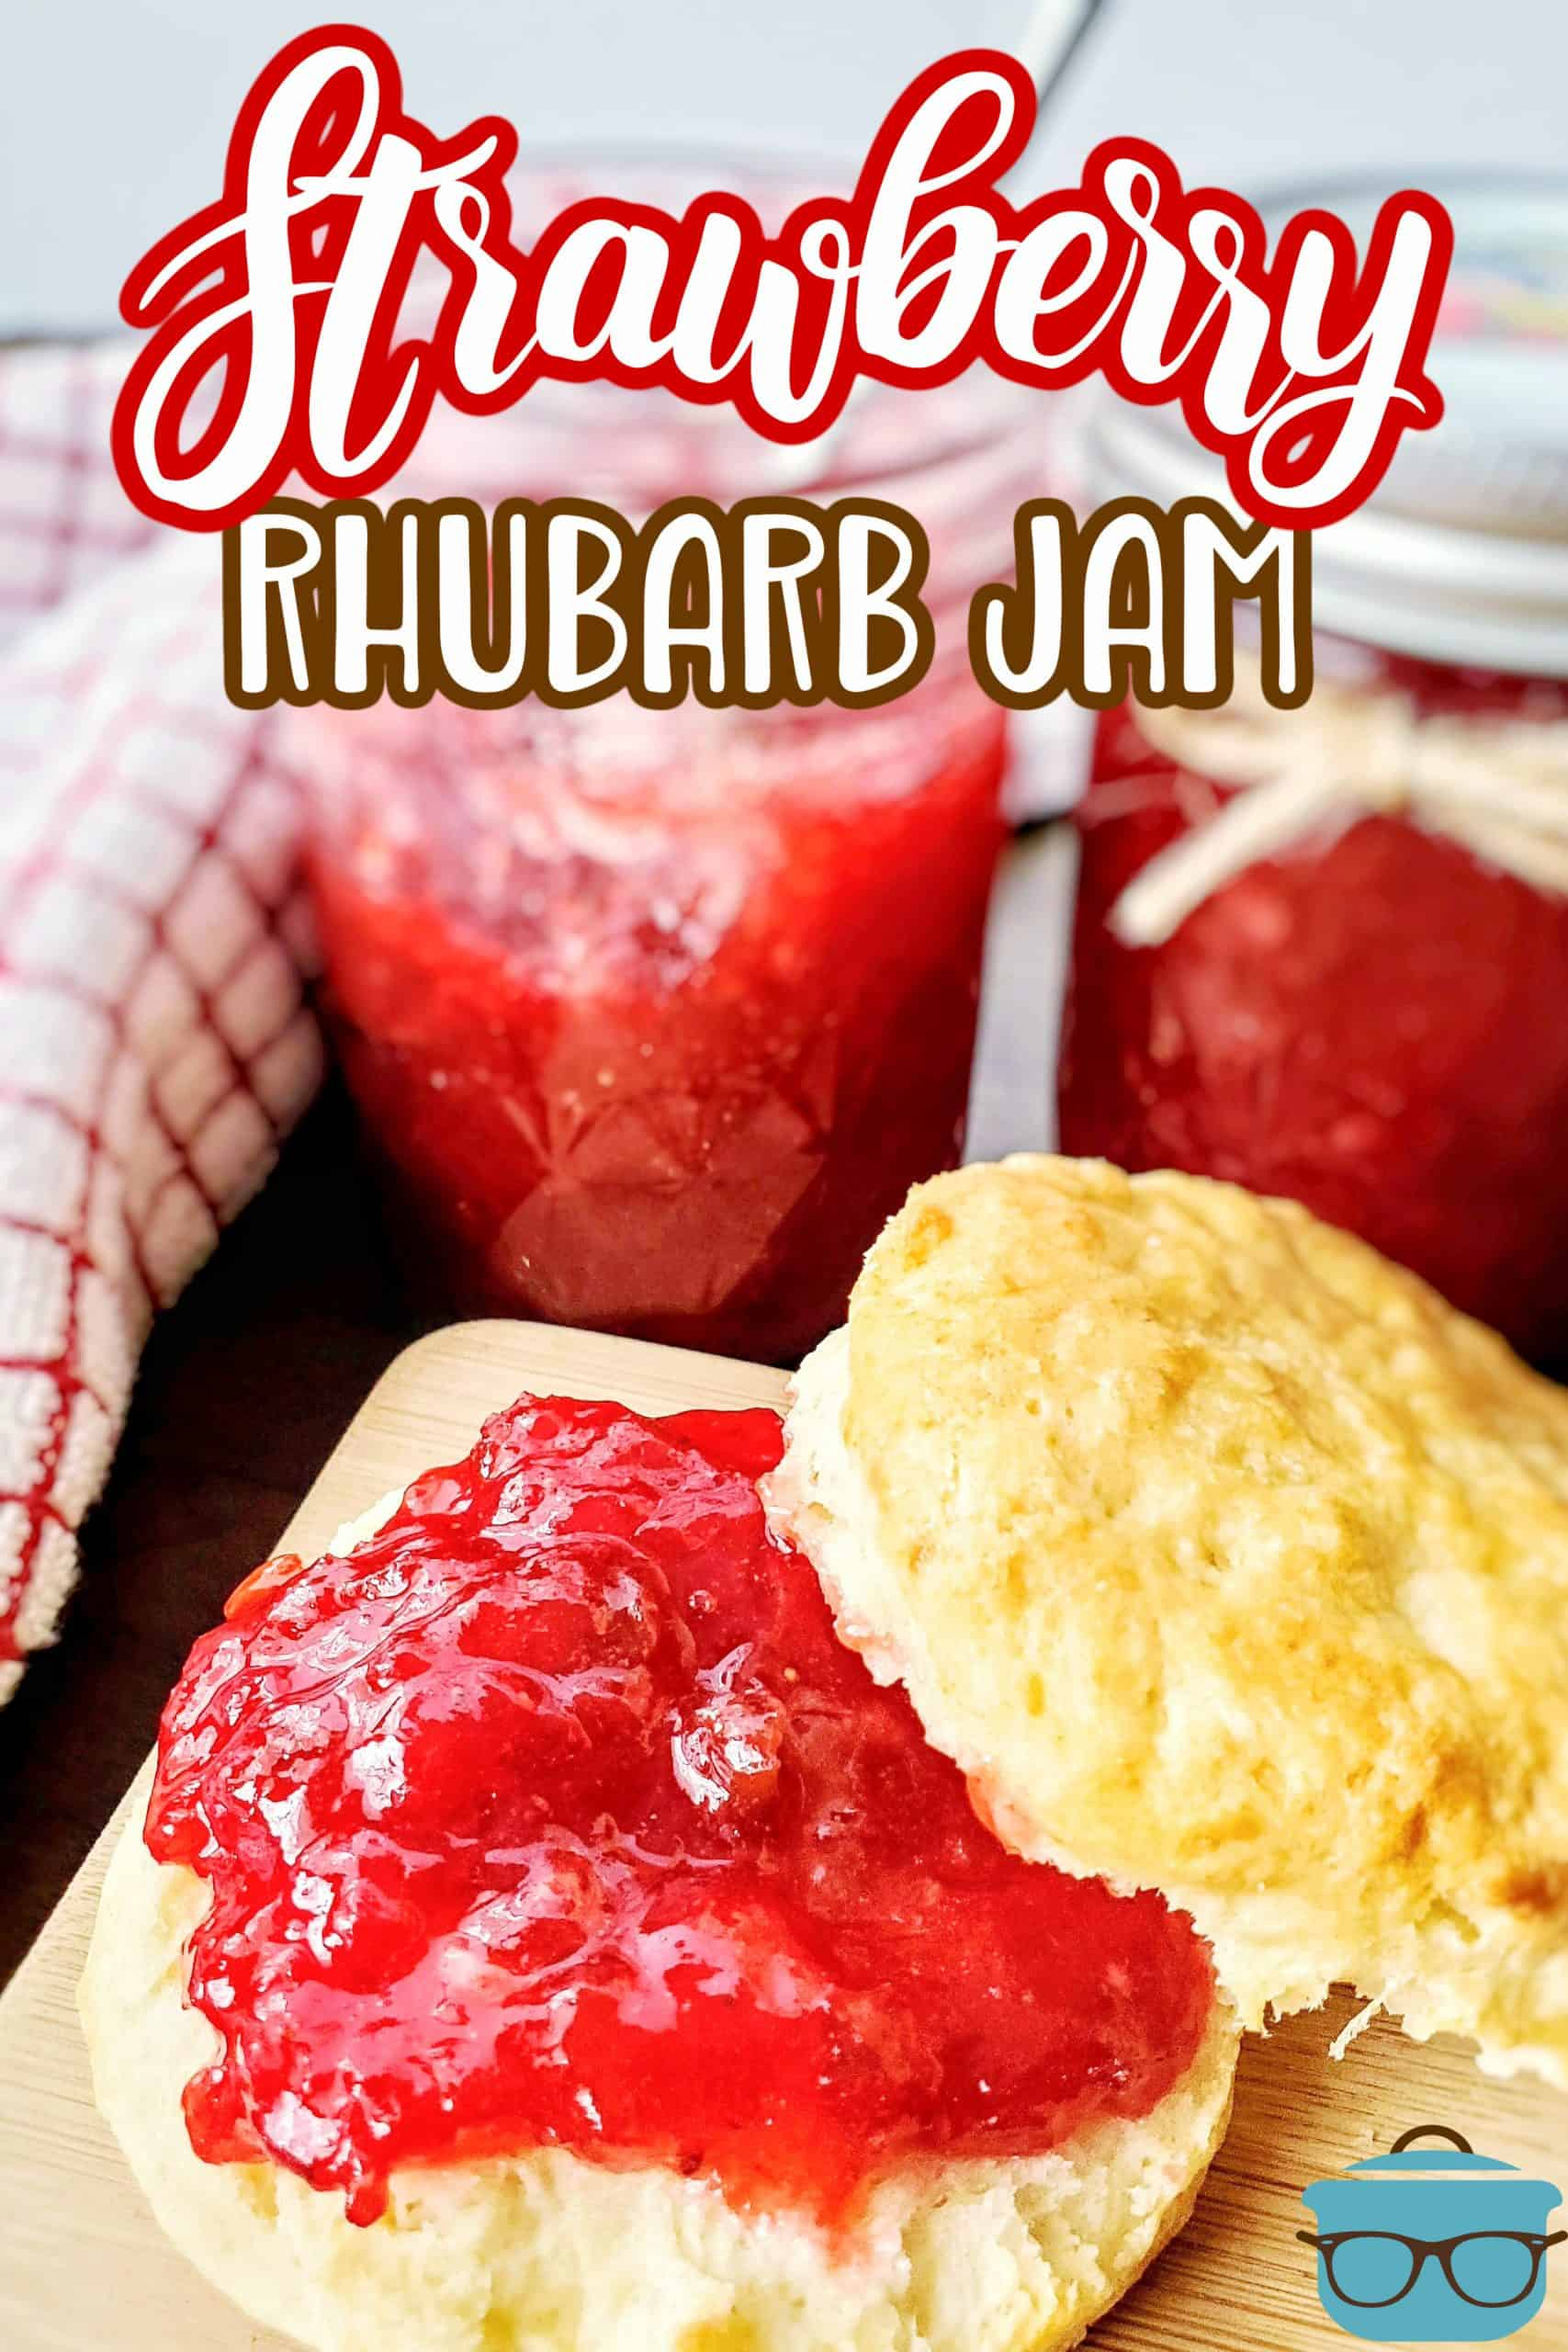 This Strawberry Rhubarb Jam is an easy recipe that combines the flavors of sweet strawberry and tart rhubarb to create aperfectly balance spread!